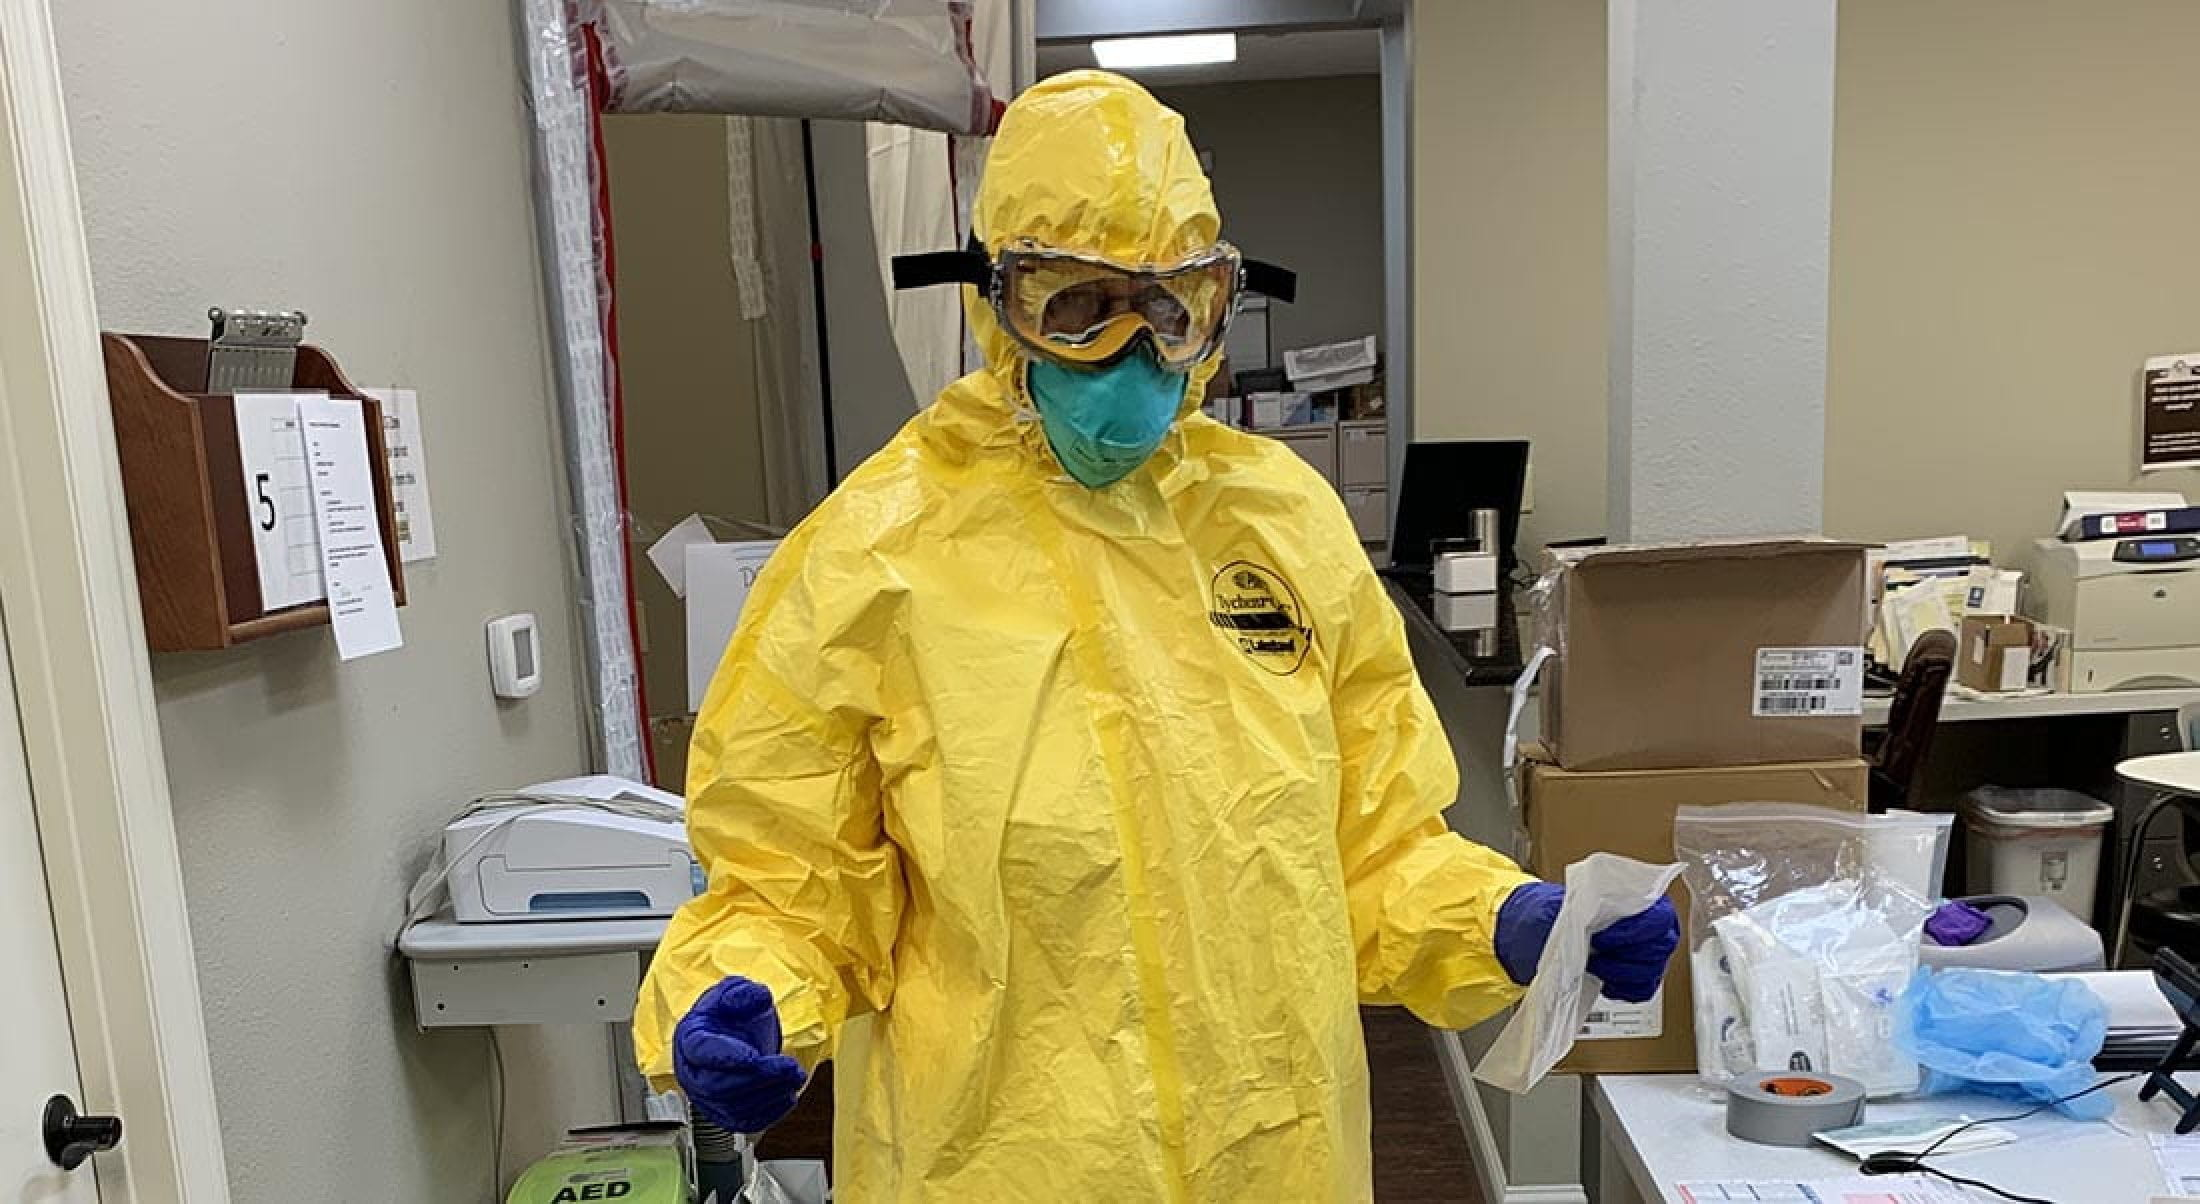 Barbara Baxter of the Agape Clinic wearing personal protective equipment to treat suspected COVID-19 case.